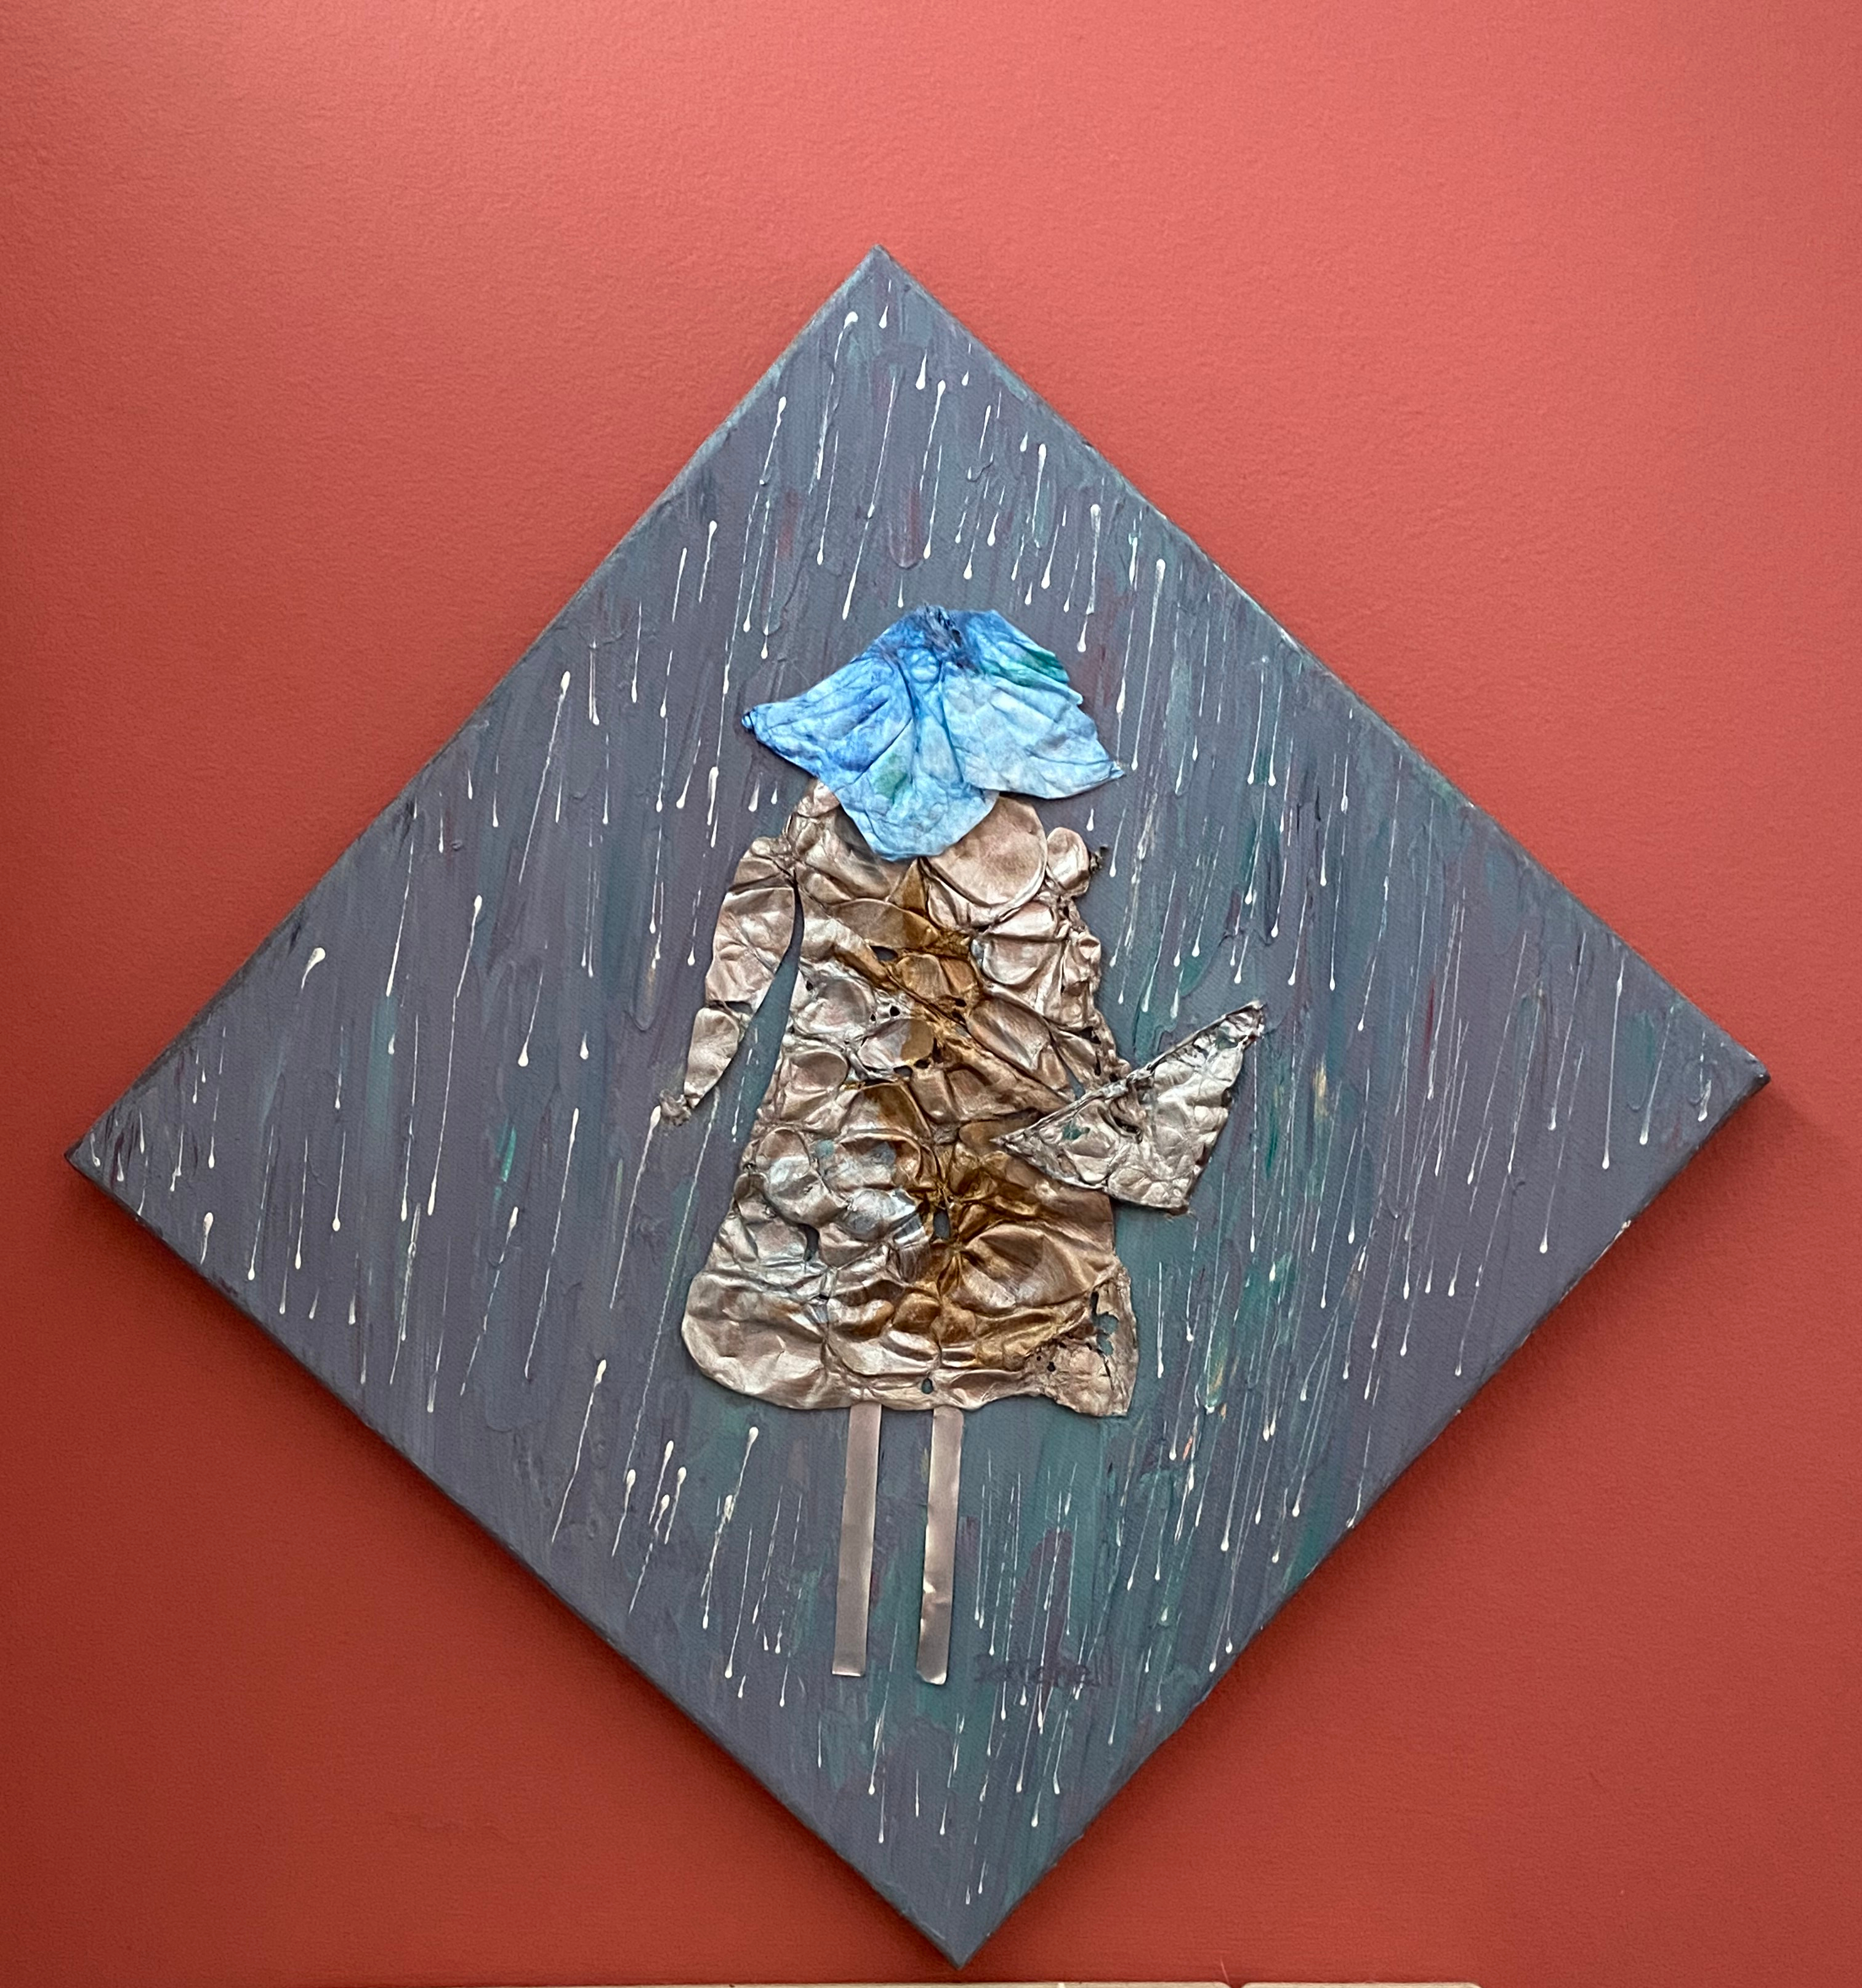 Rainhat Lady is a collage / assemblage work on canvas by Maura Satchell using found objects and created textures.